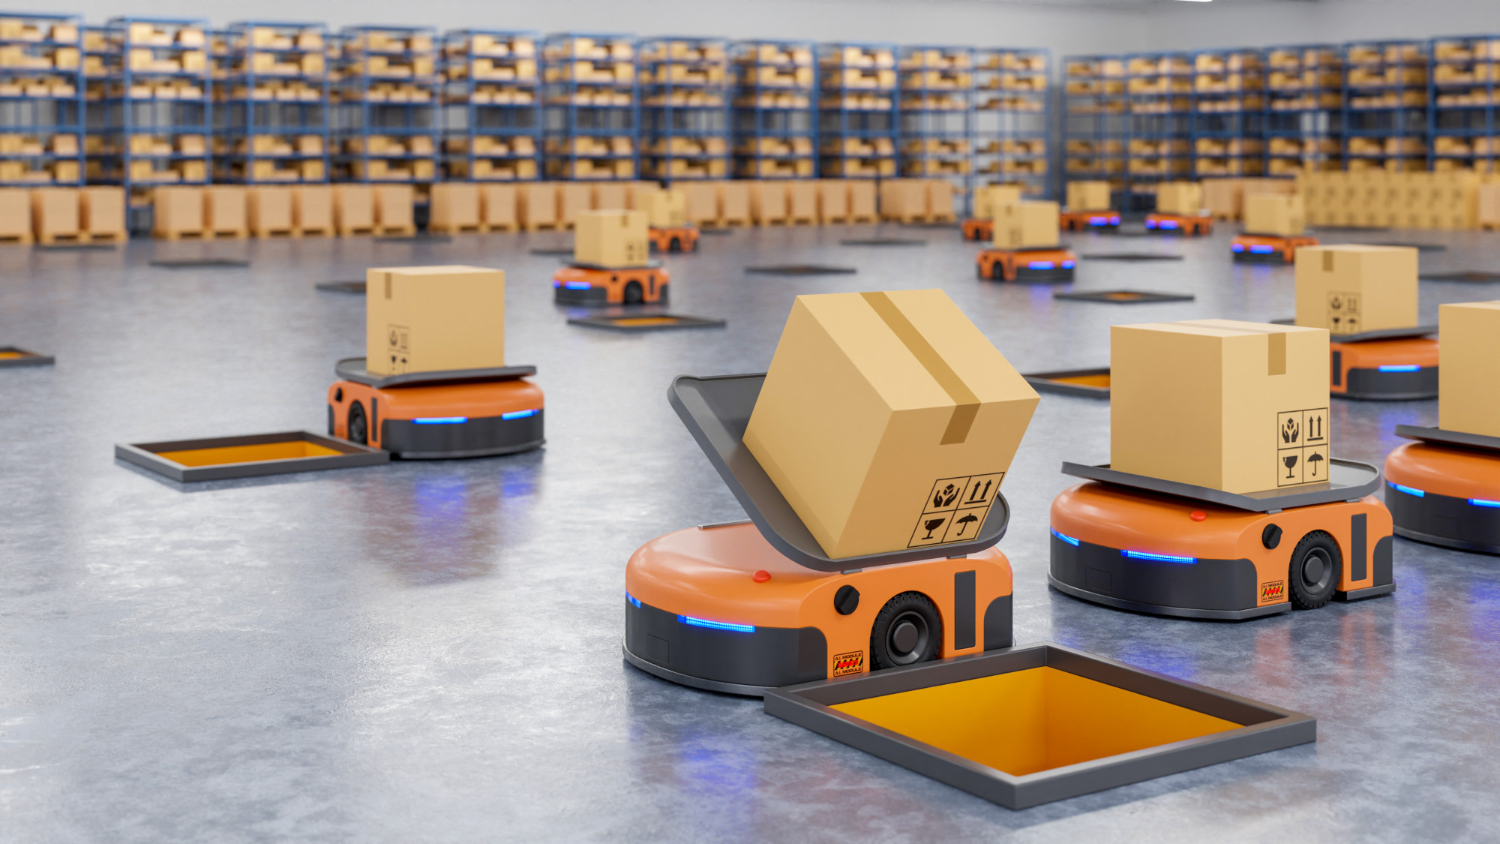 Amazon workers compensation claim specialists